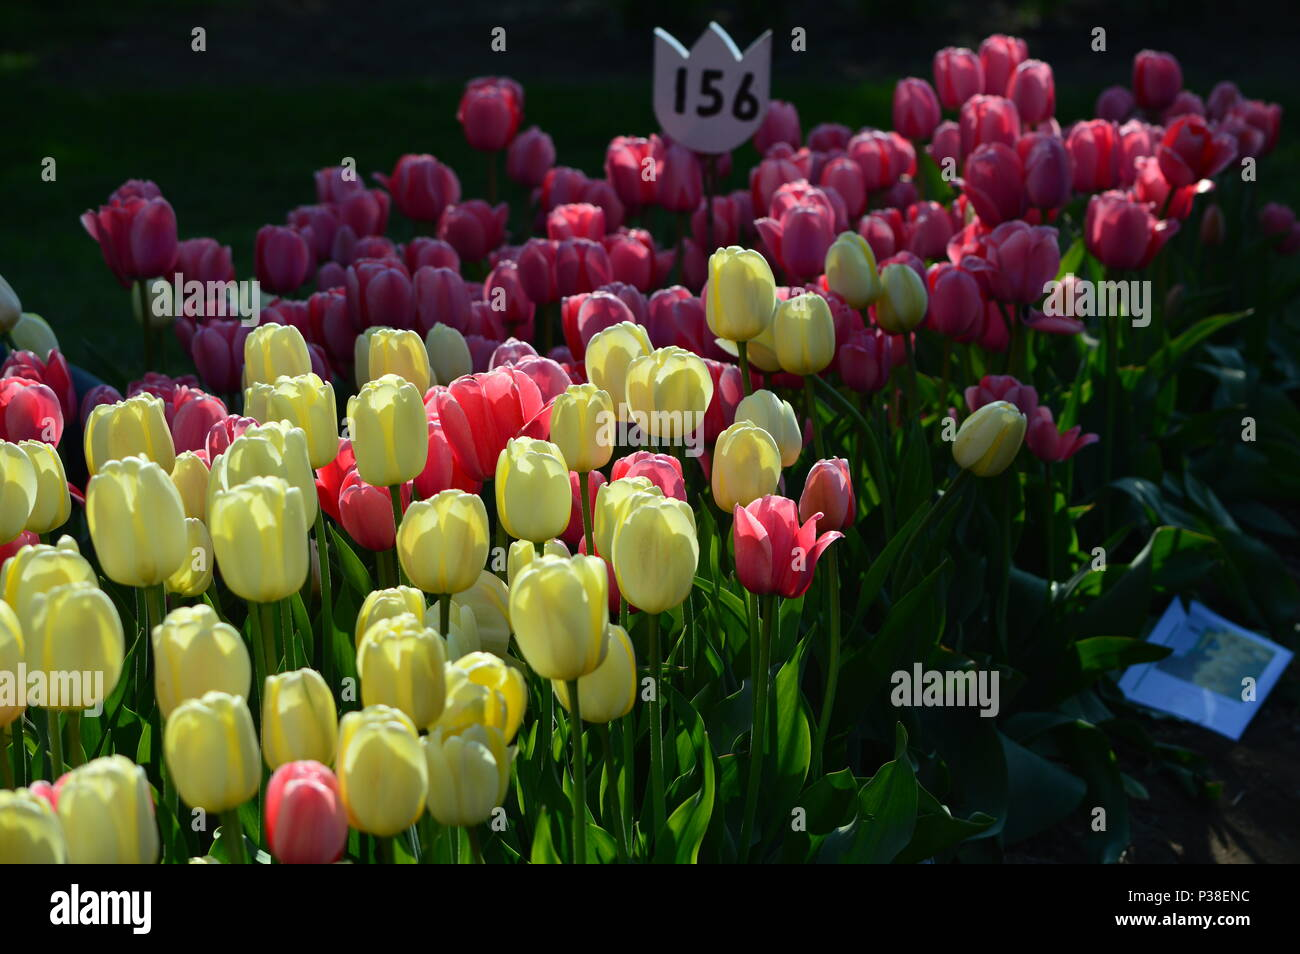 Apricot Impression and Delight Tulips at Veldheer Tulip Garden in Holland - Stock Image